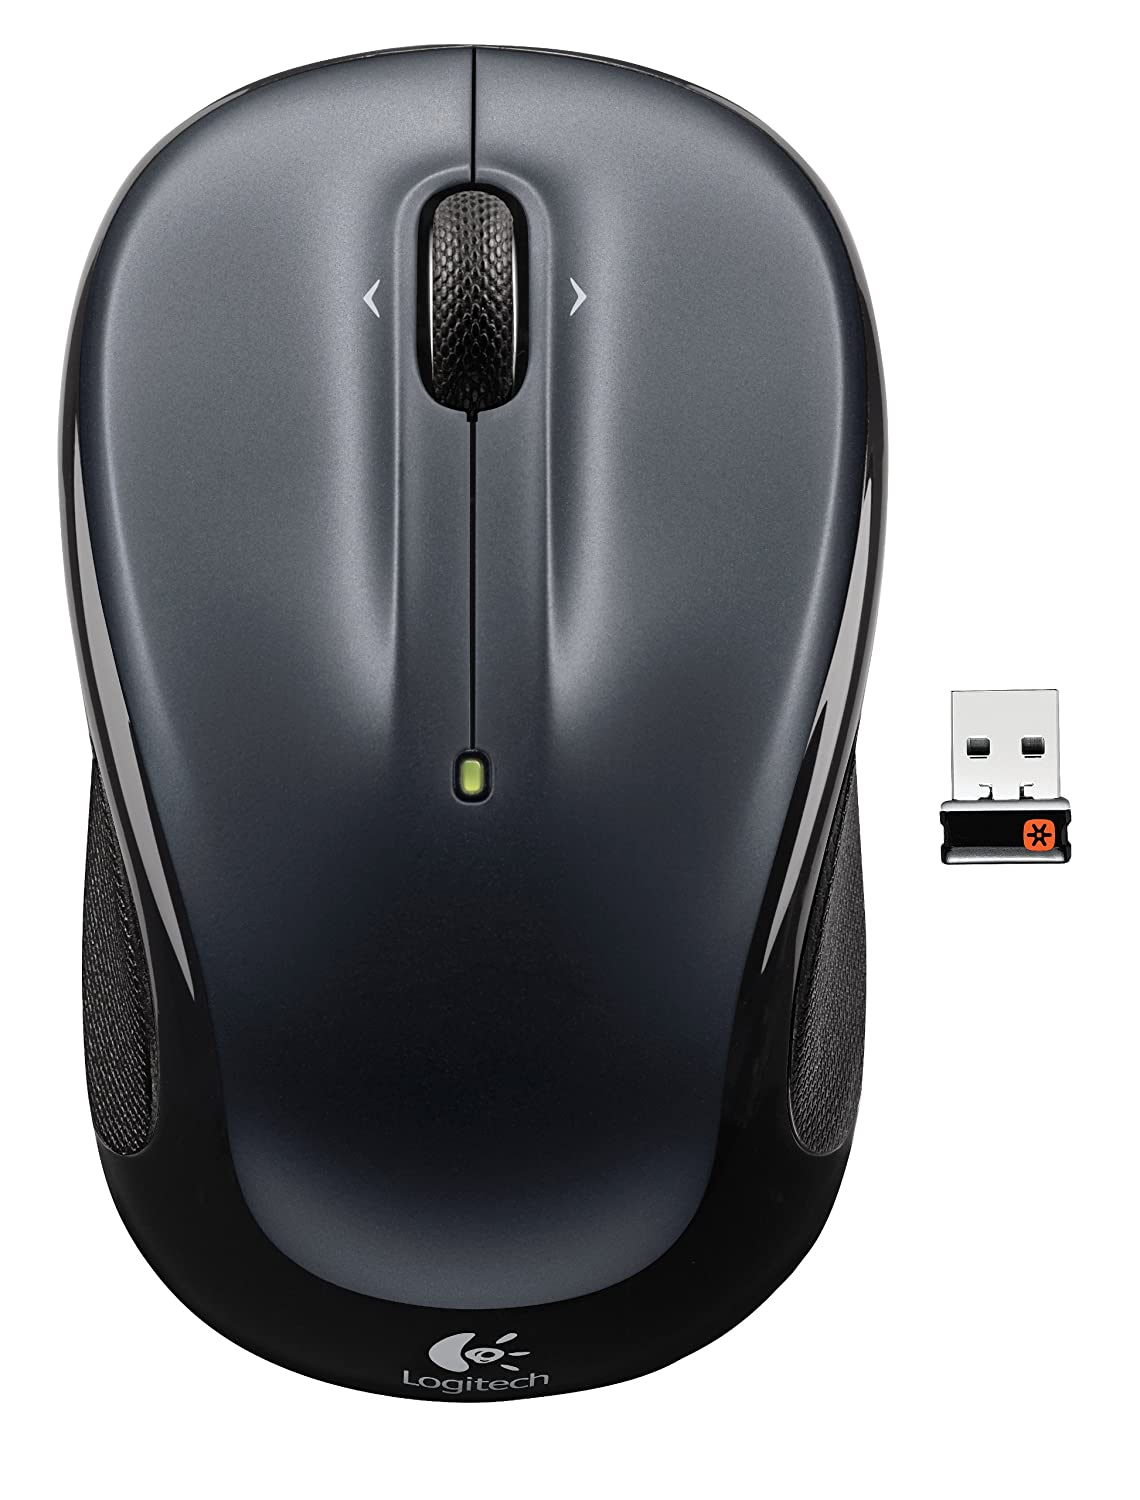 a95a40b2916 The Logitech M325 is mainly designed for use with notebook computers;  however, it is a reasonably priced mouse that I would not be afraid to use  as the ...